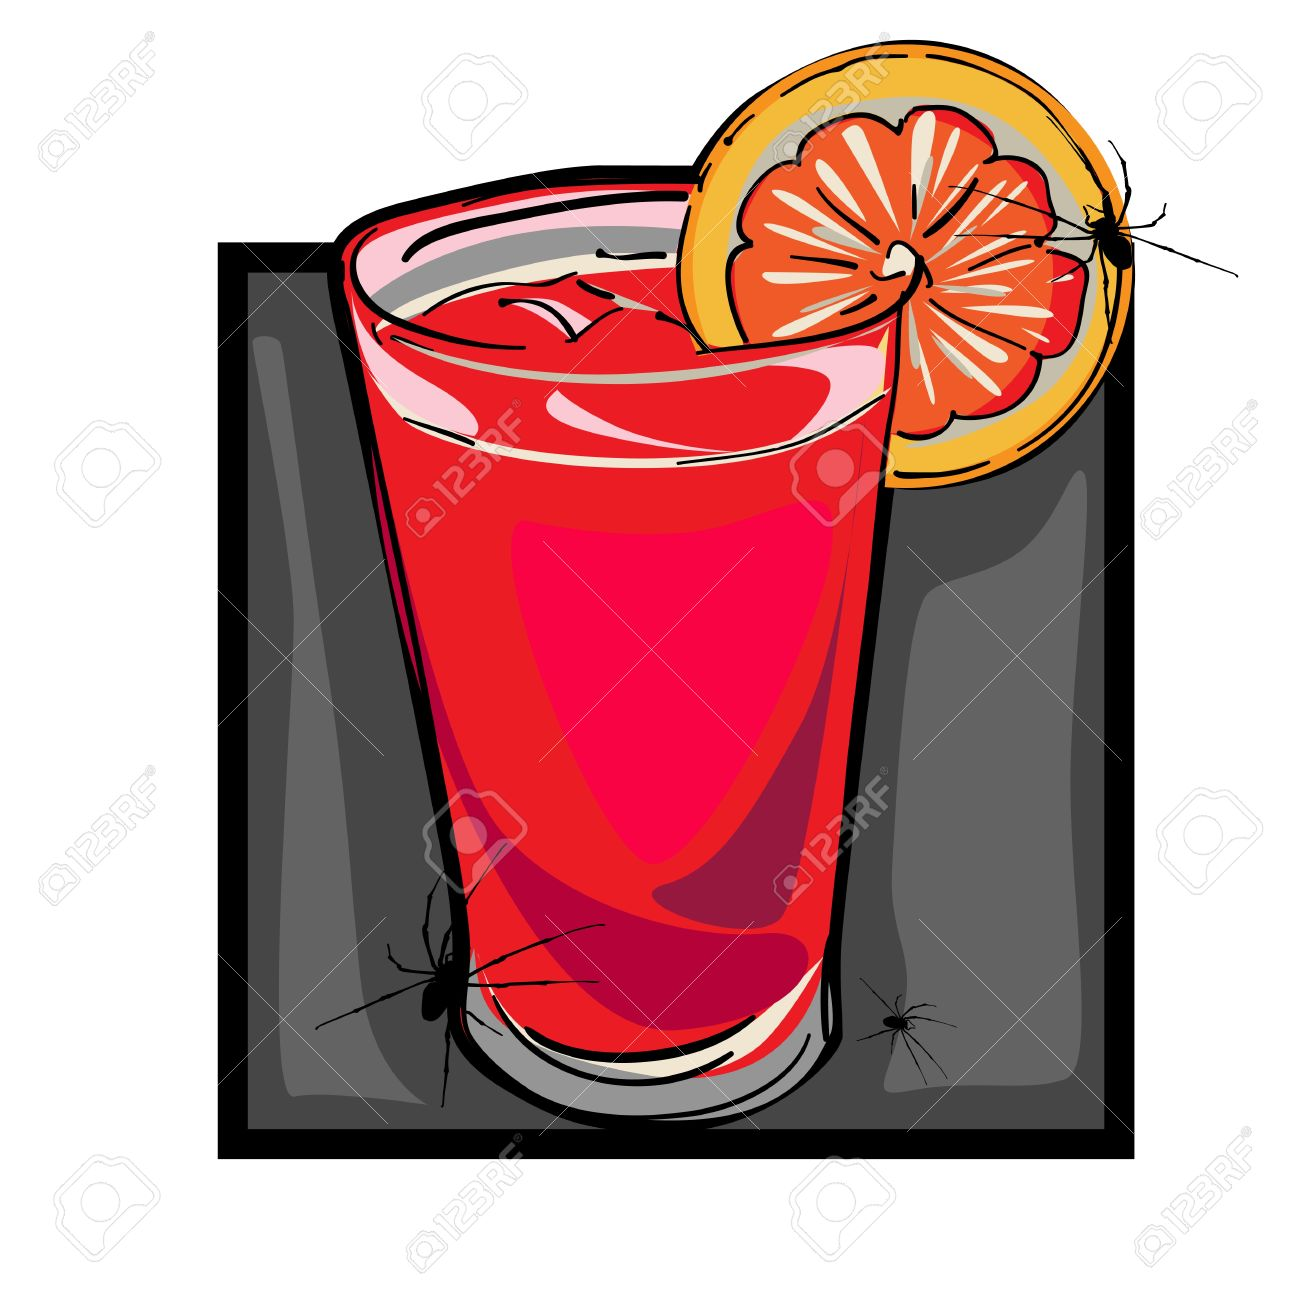 Hand Drawn Clip Art Illustration Of A Bloody Mary Drink With.